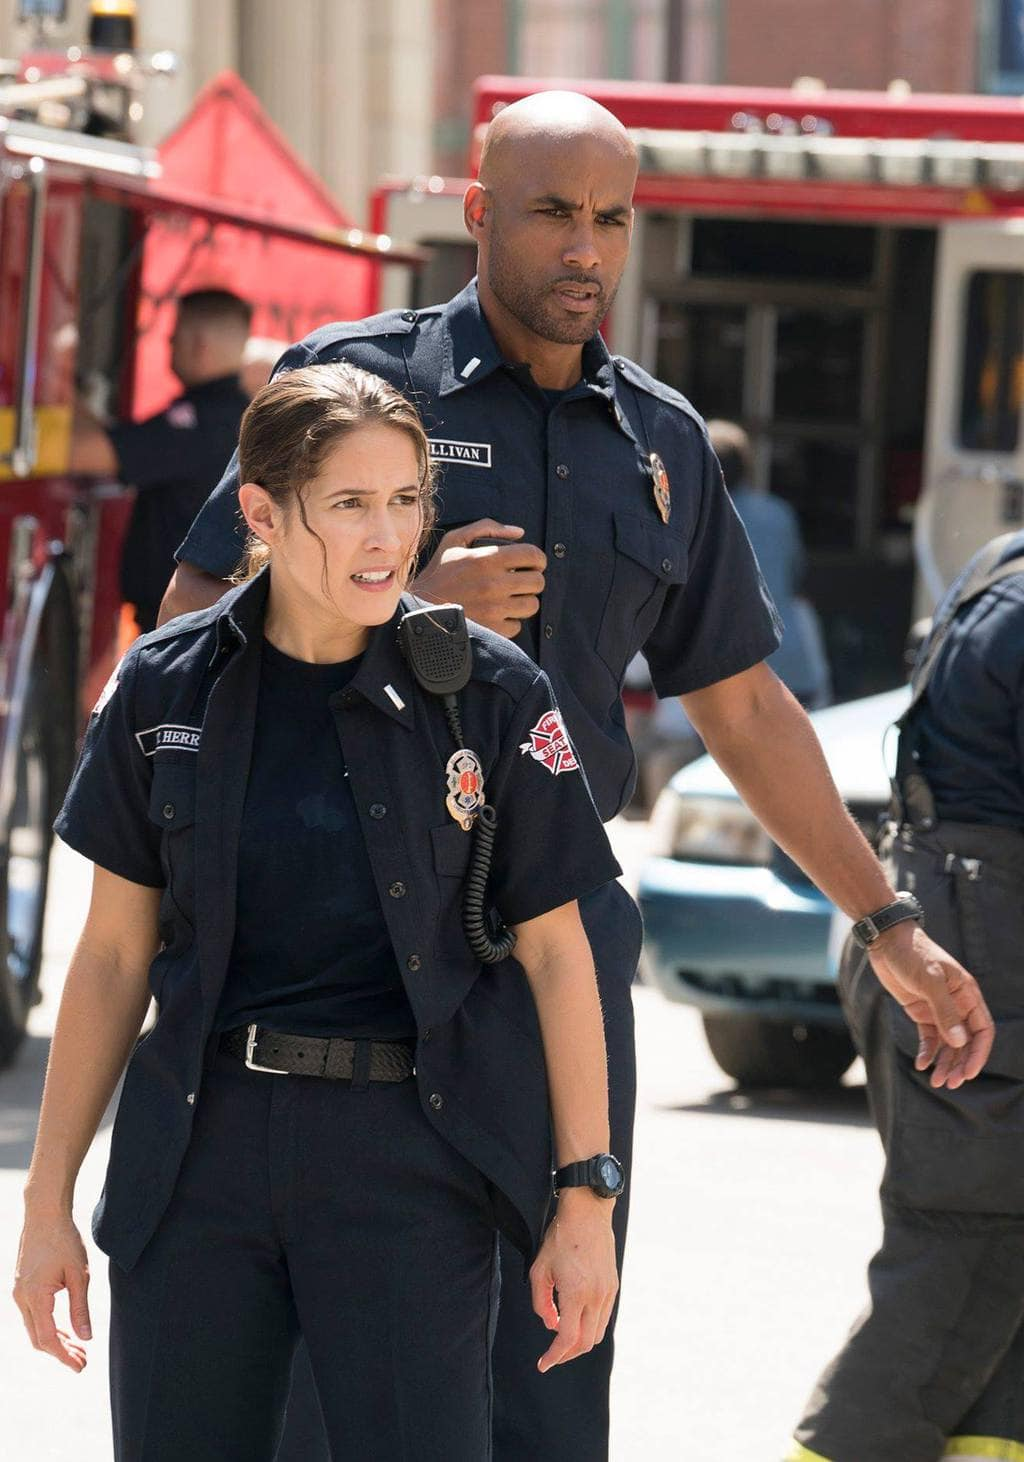 Visit the Set of Station 19 - Jaina Lee Ortiz - Boris Kodjoe